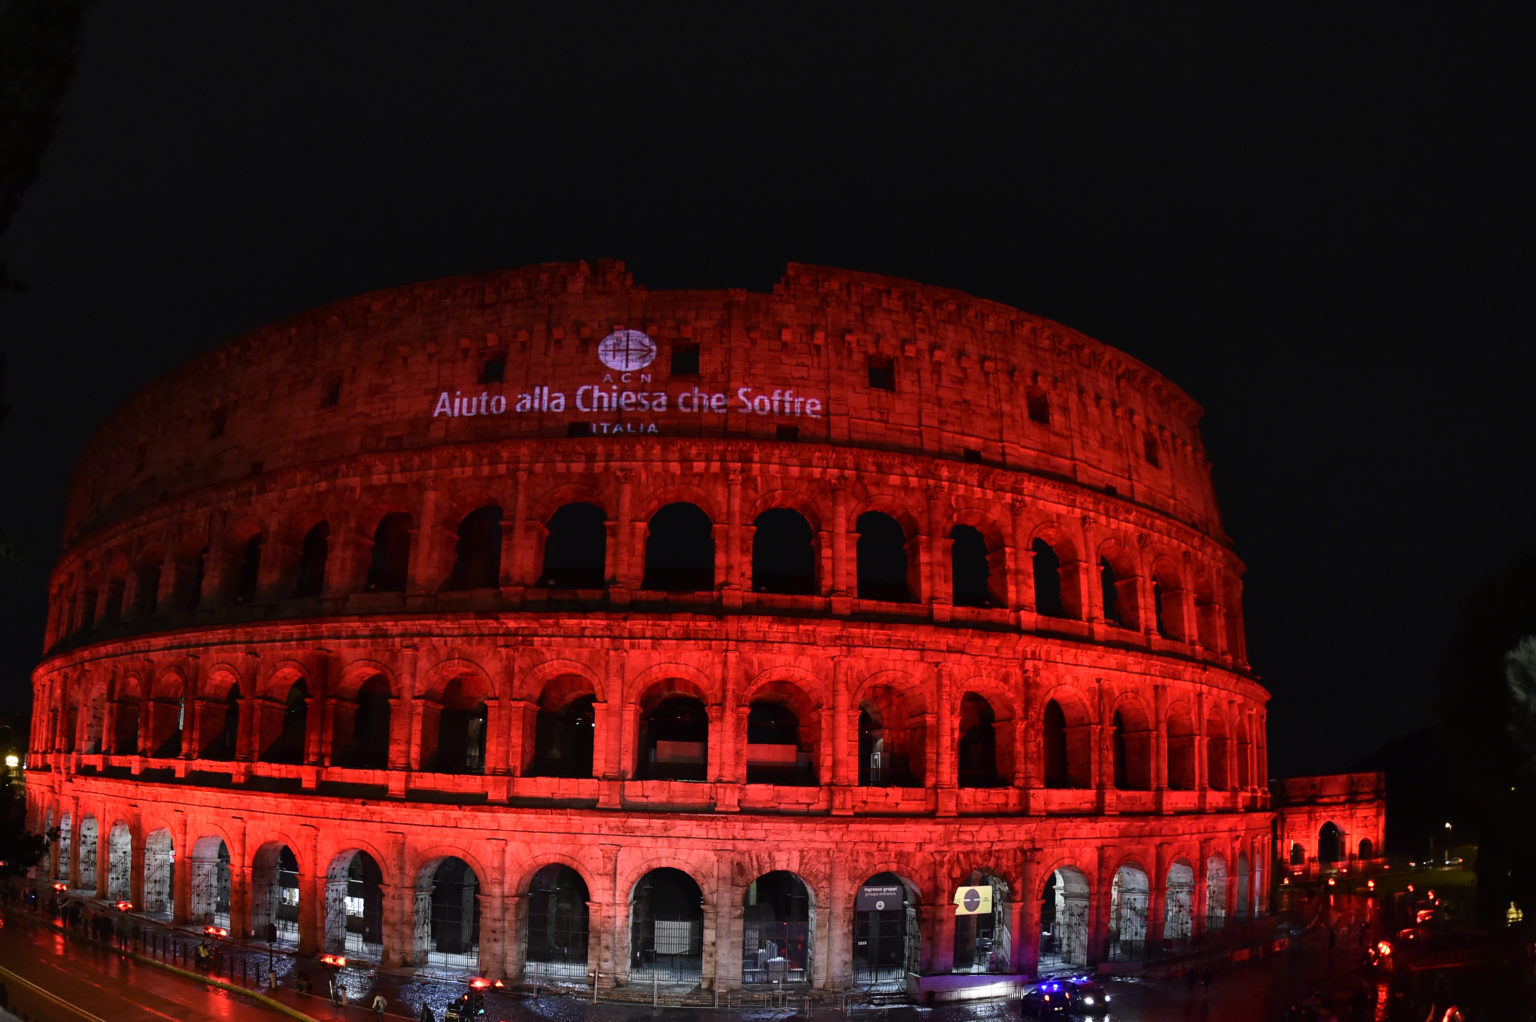 Italy, Rome 24th of February 2018 ACN Event - Illuminated Coliseum in Red - with ACN Logo